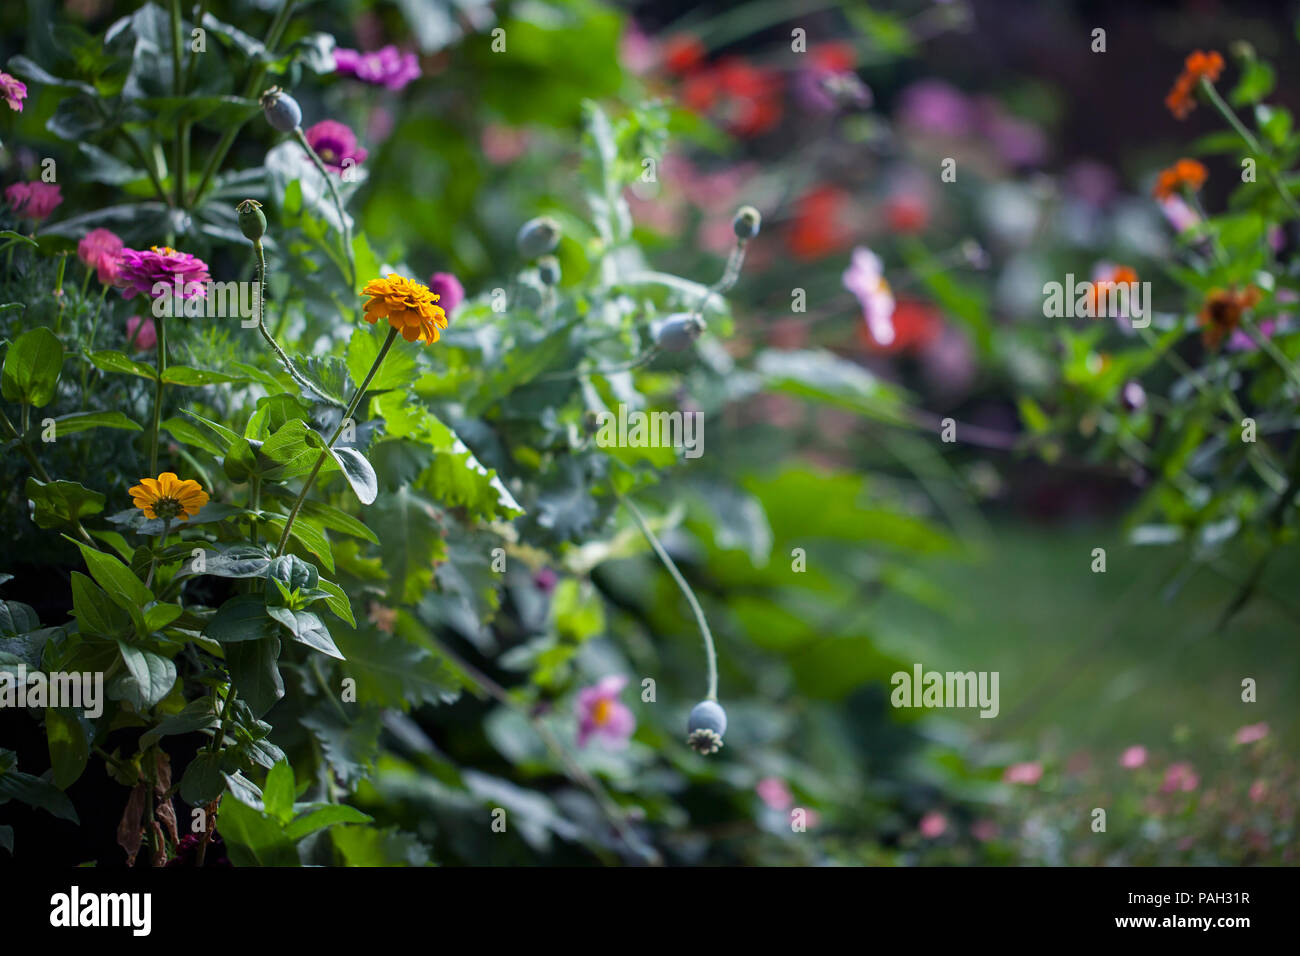 Garden in summer in full bloom - Stock Image